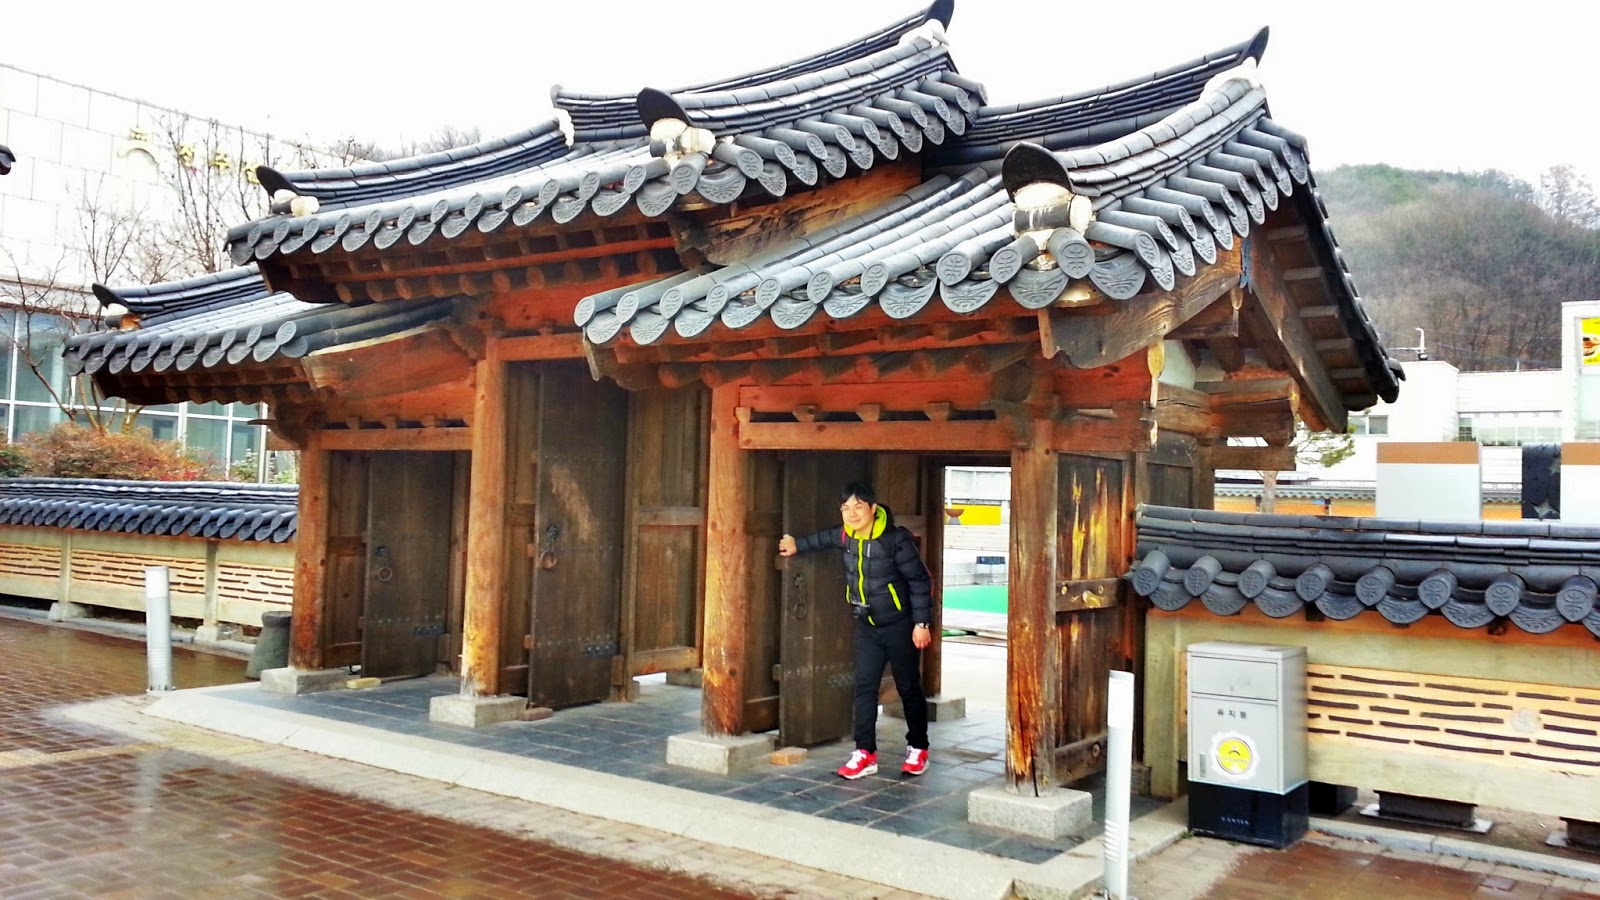 Jeonju Hanok Village Slow City | meheartseoul.blogspot.com